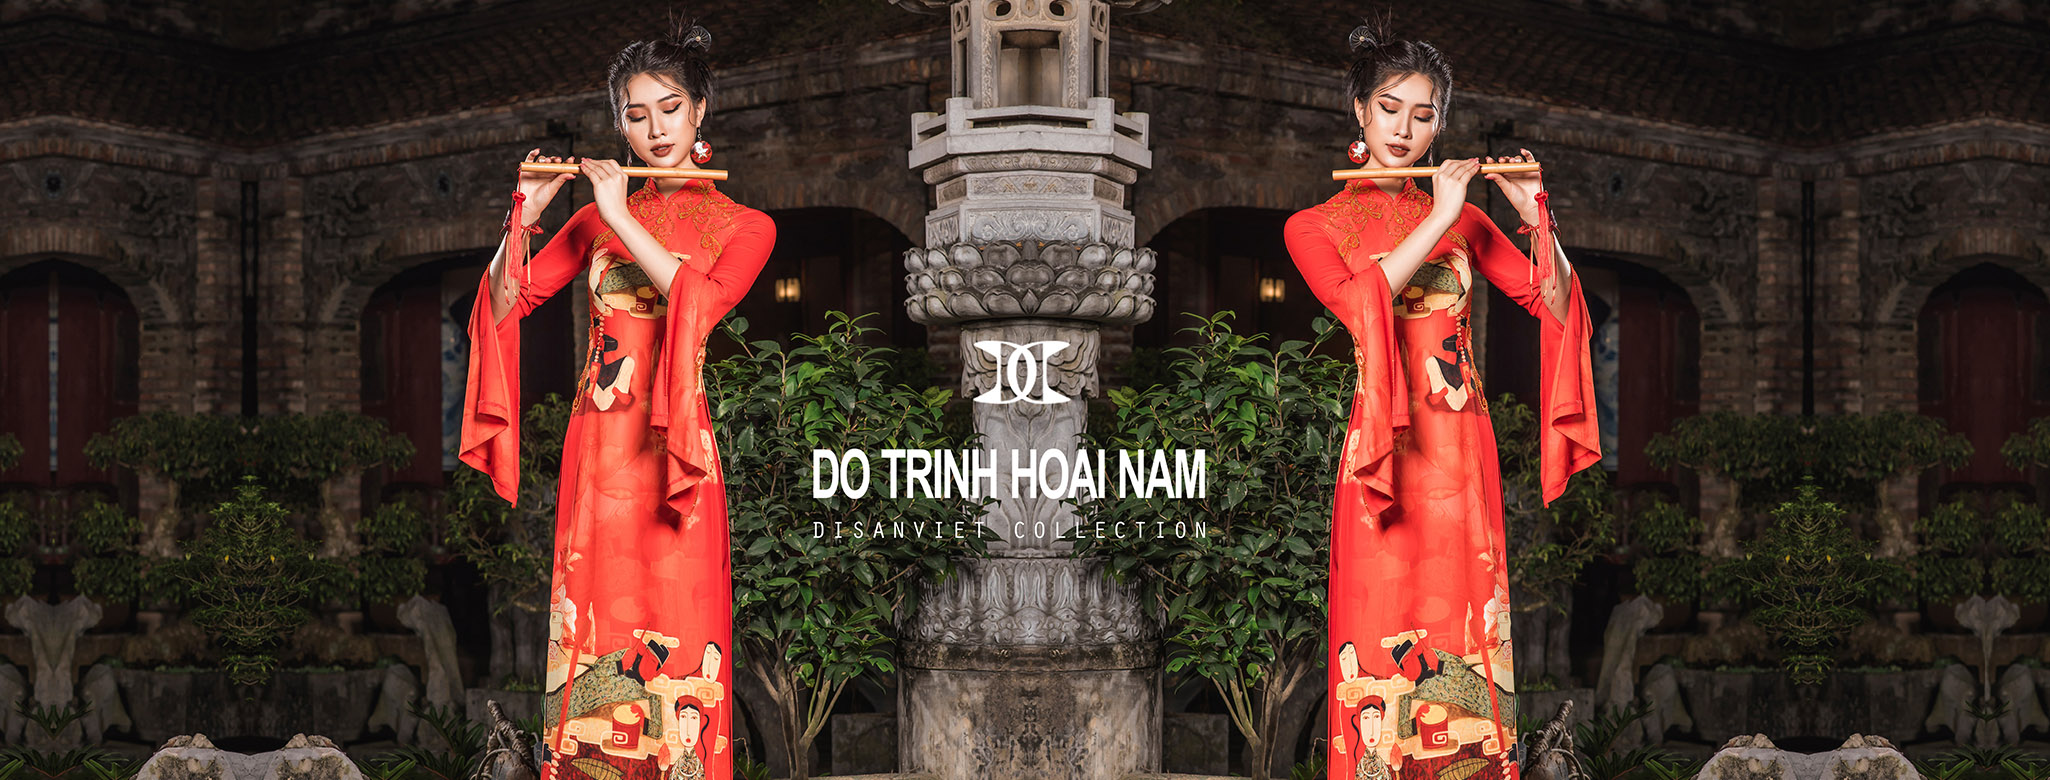 DI SAN VIET COLLECTION